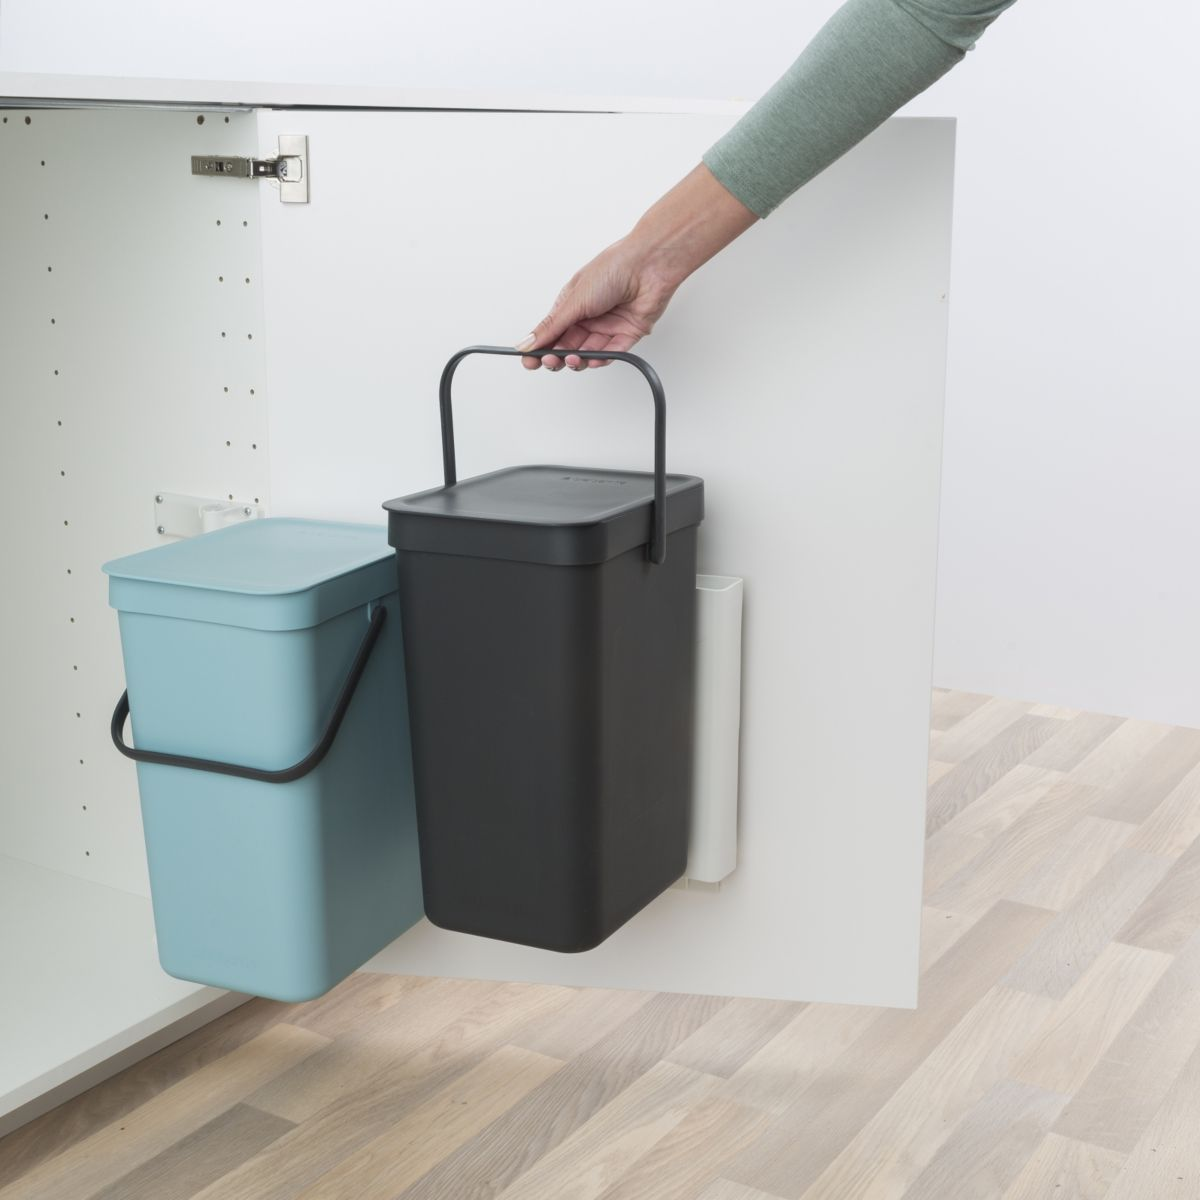 Poubelle BRABANTIA Built-in Bin Sort & G (photo)